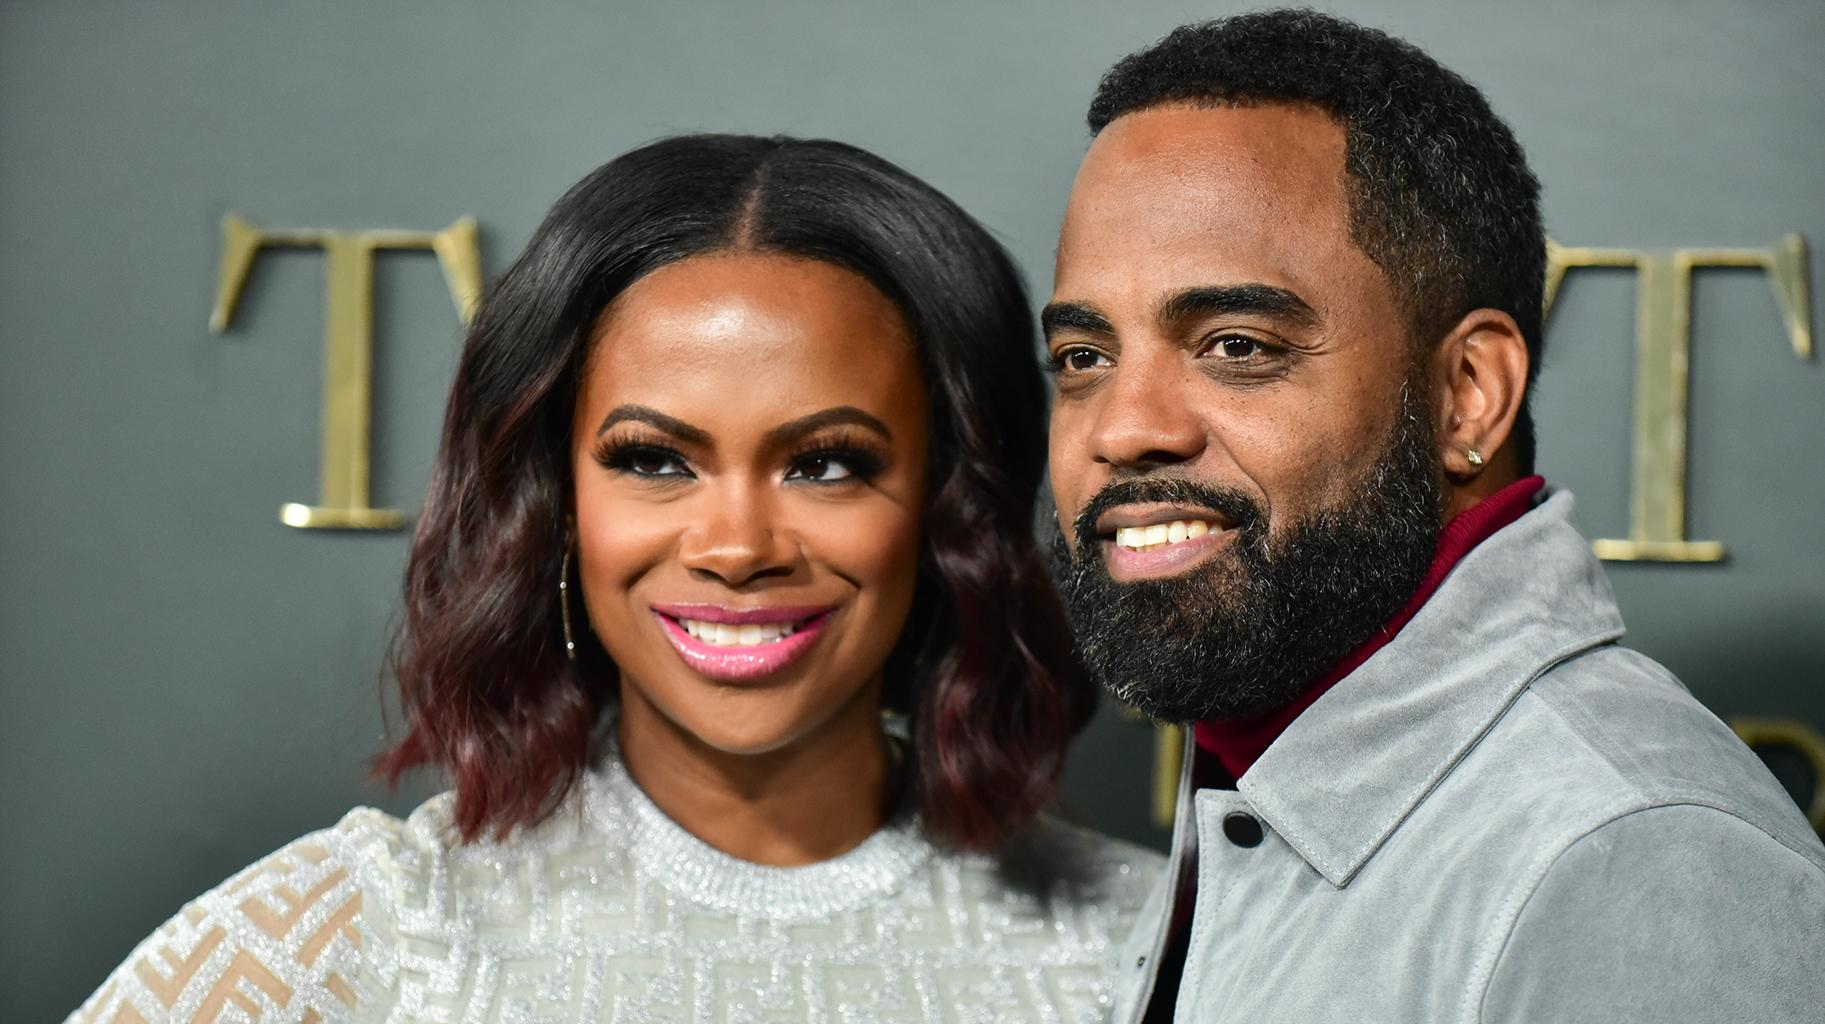 Kandi Burruss Impresses Fans With Some Pics Featuring Her Grandma - Check Them Out Here